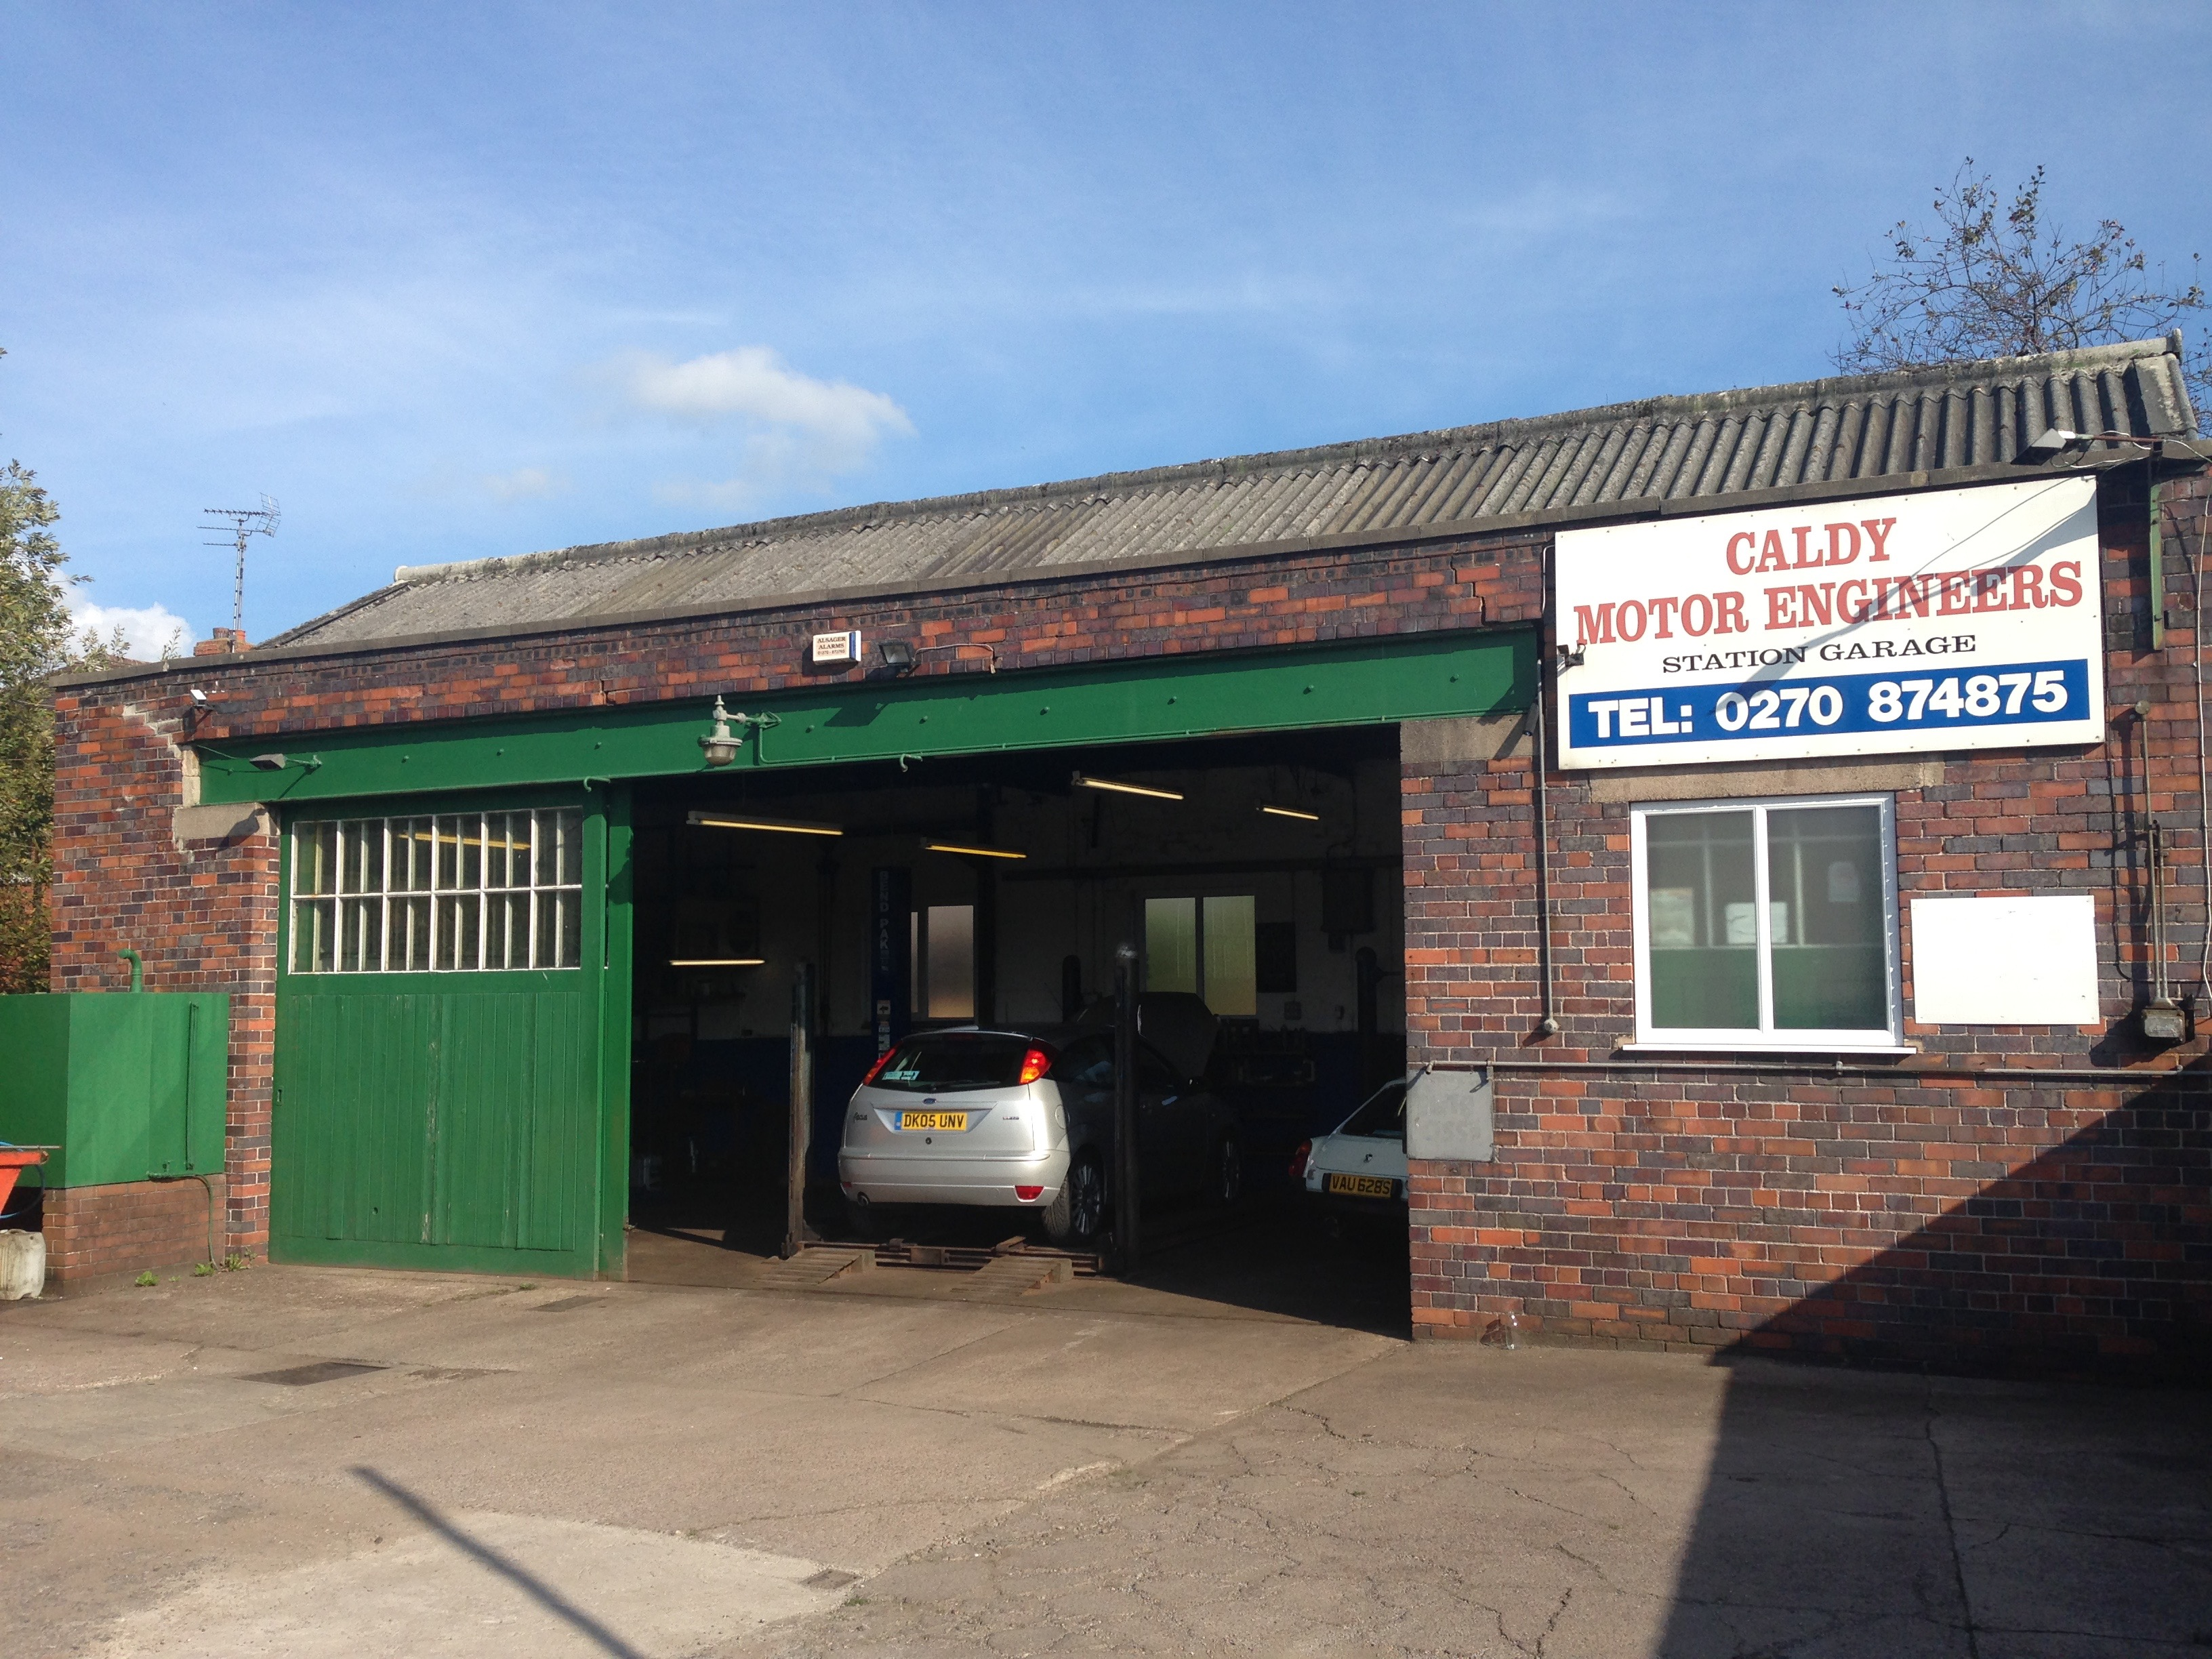 Caldy Motor Engineers, Alsager, Stoke on Trent